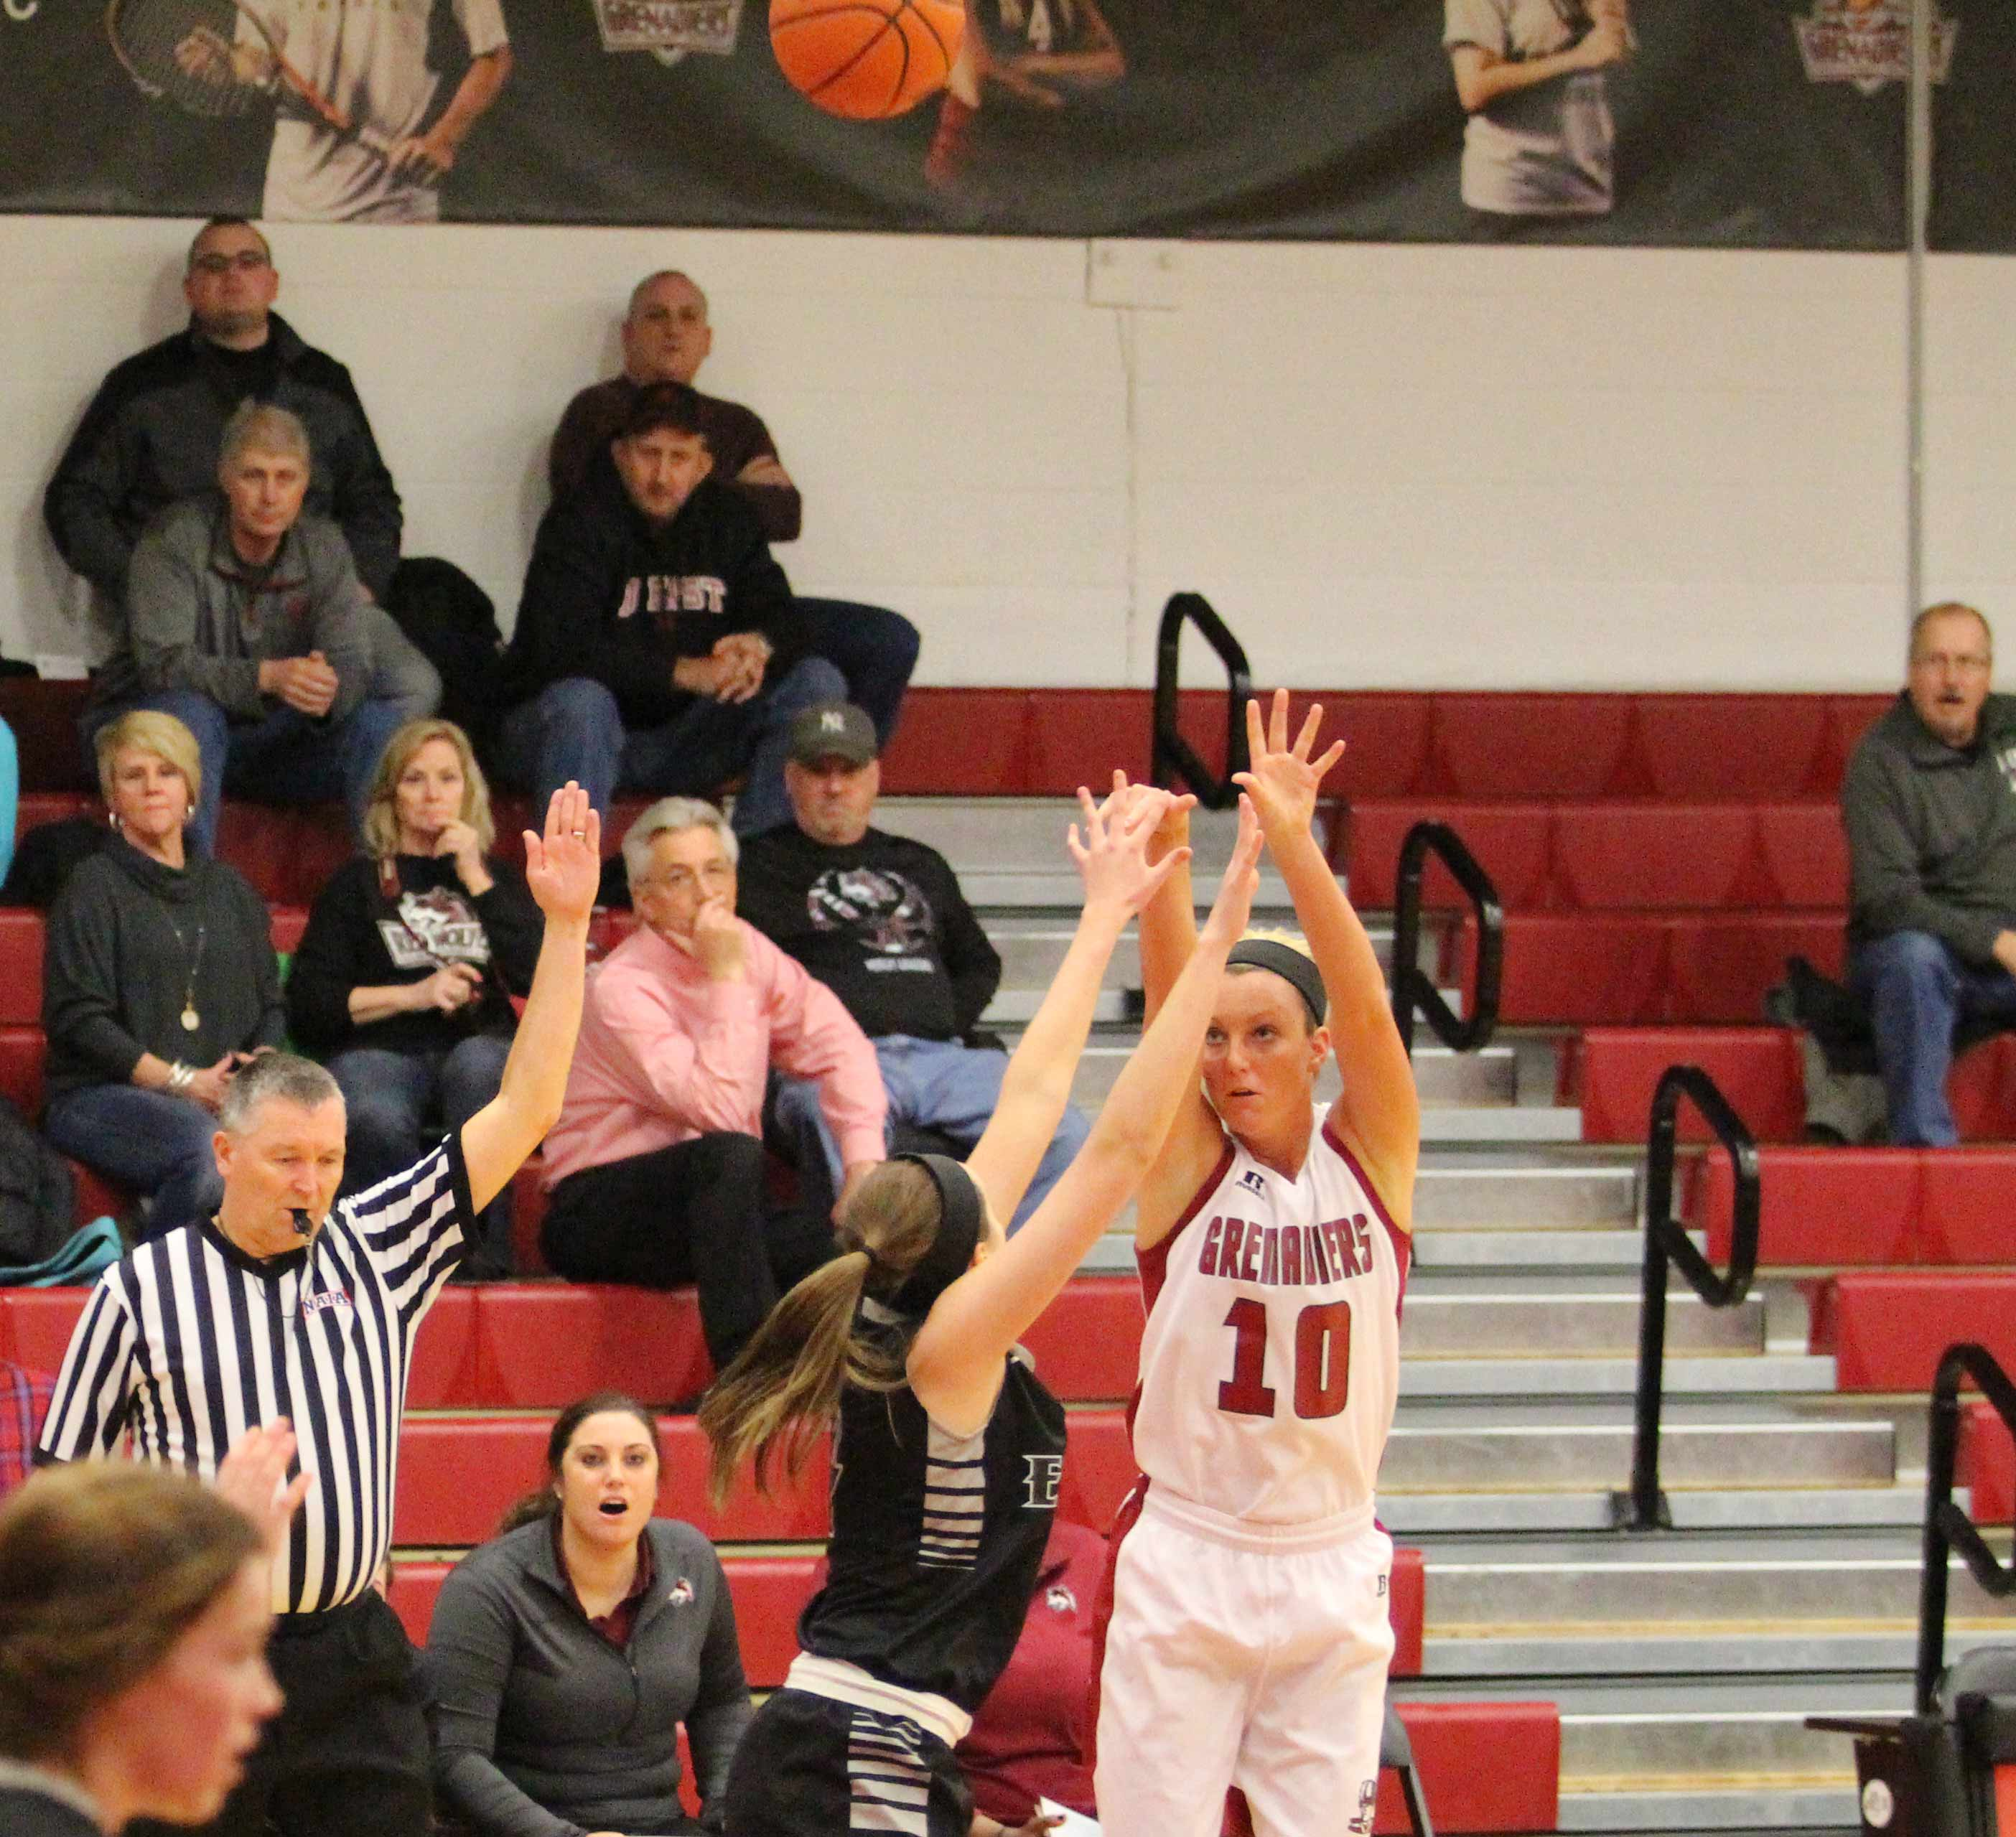 Redshirt freshman Josie Hockman shoots a 3-point basket. The Grenadiers shot 33 percent from behind the arc.